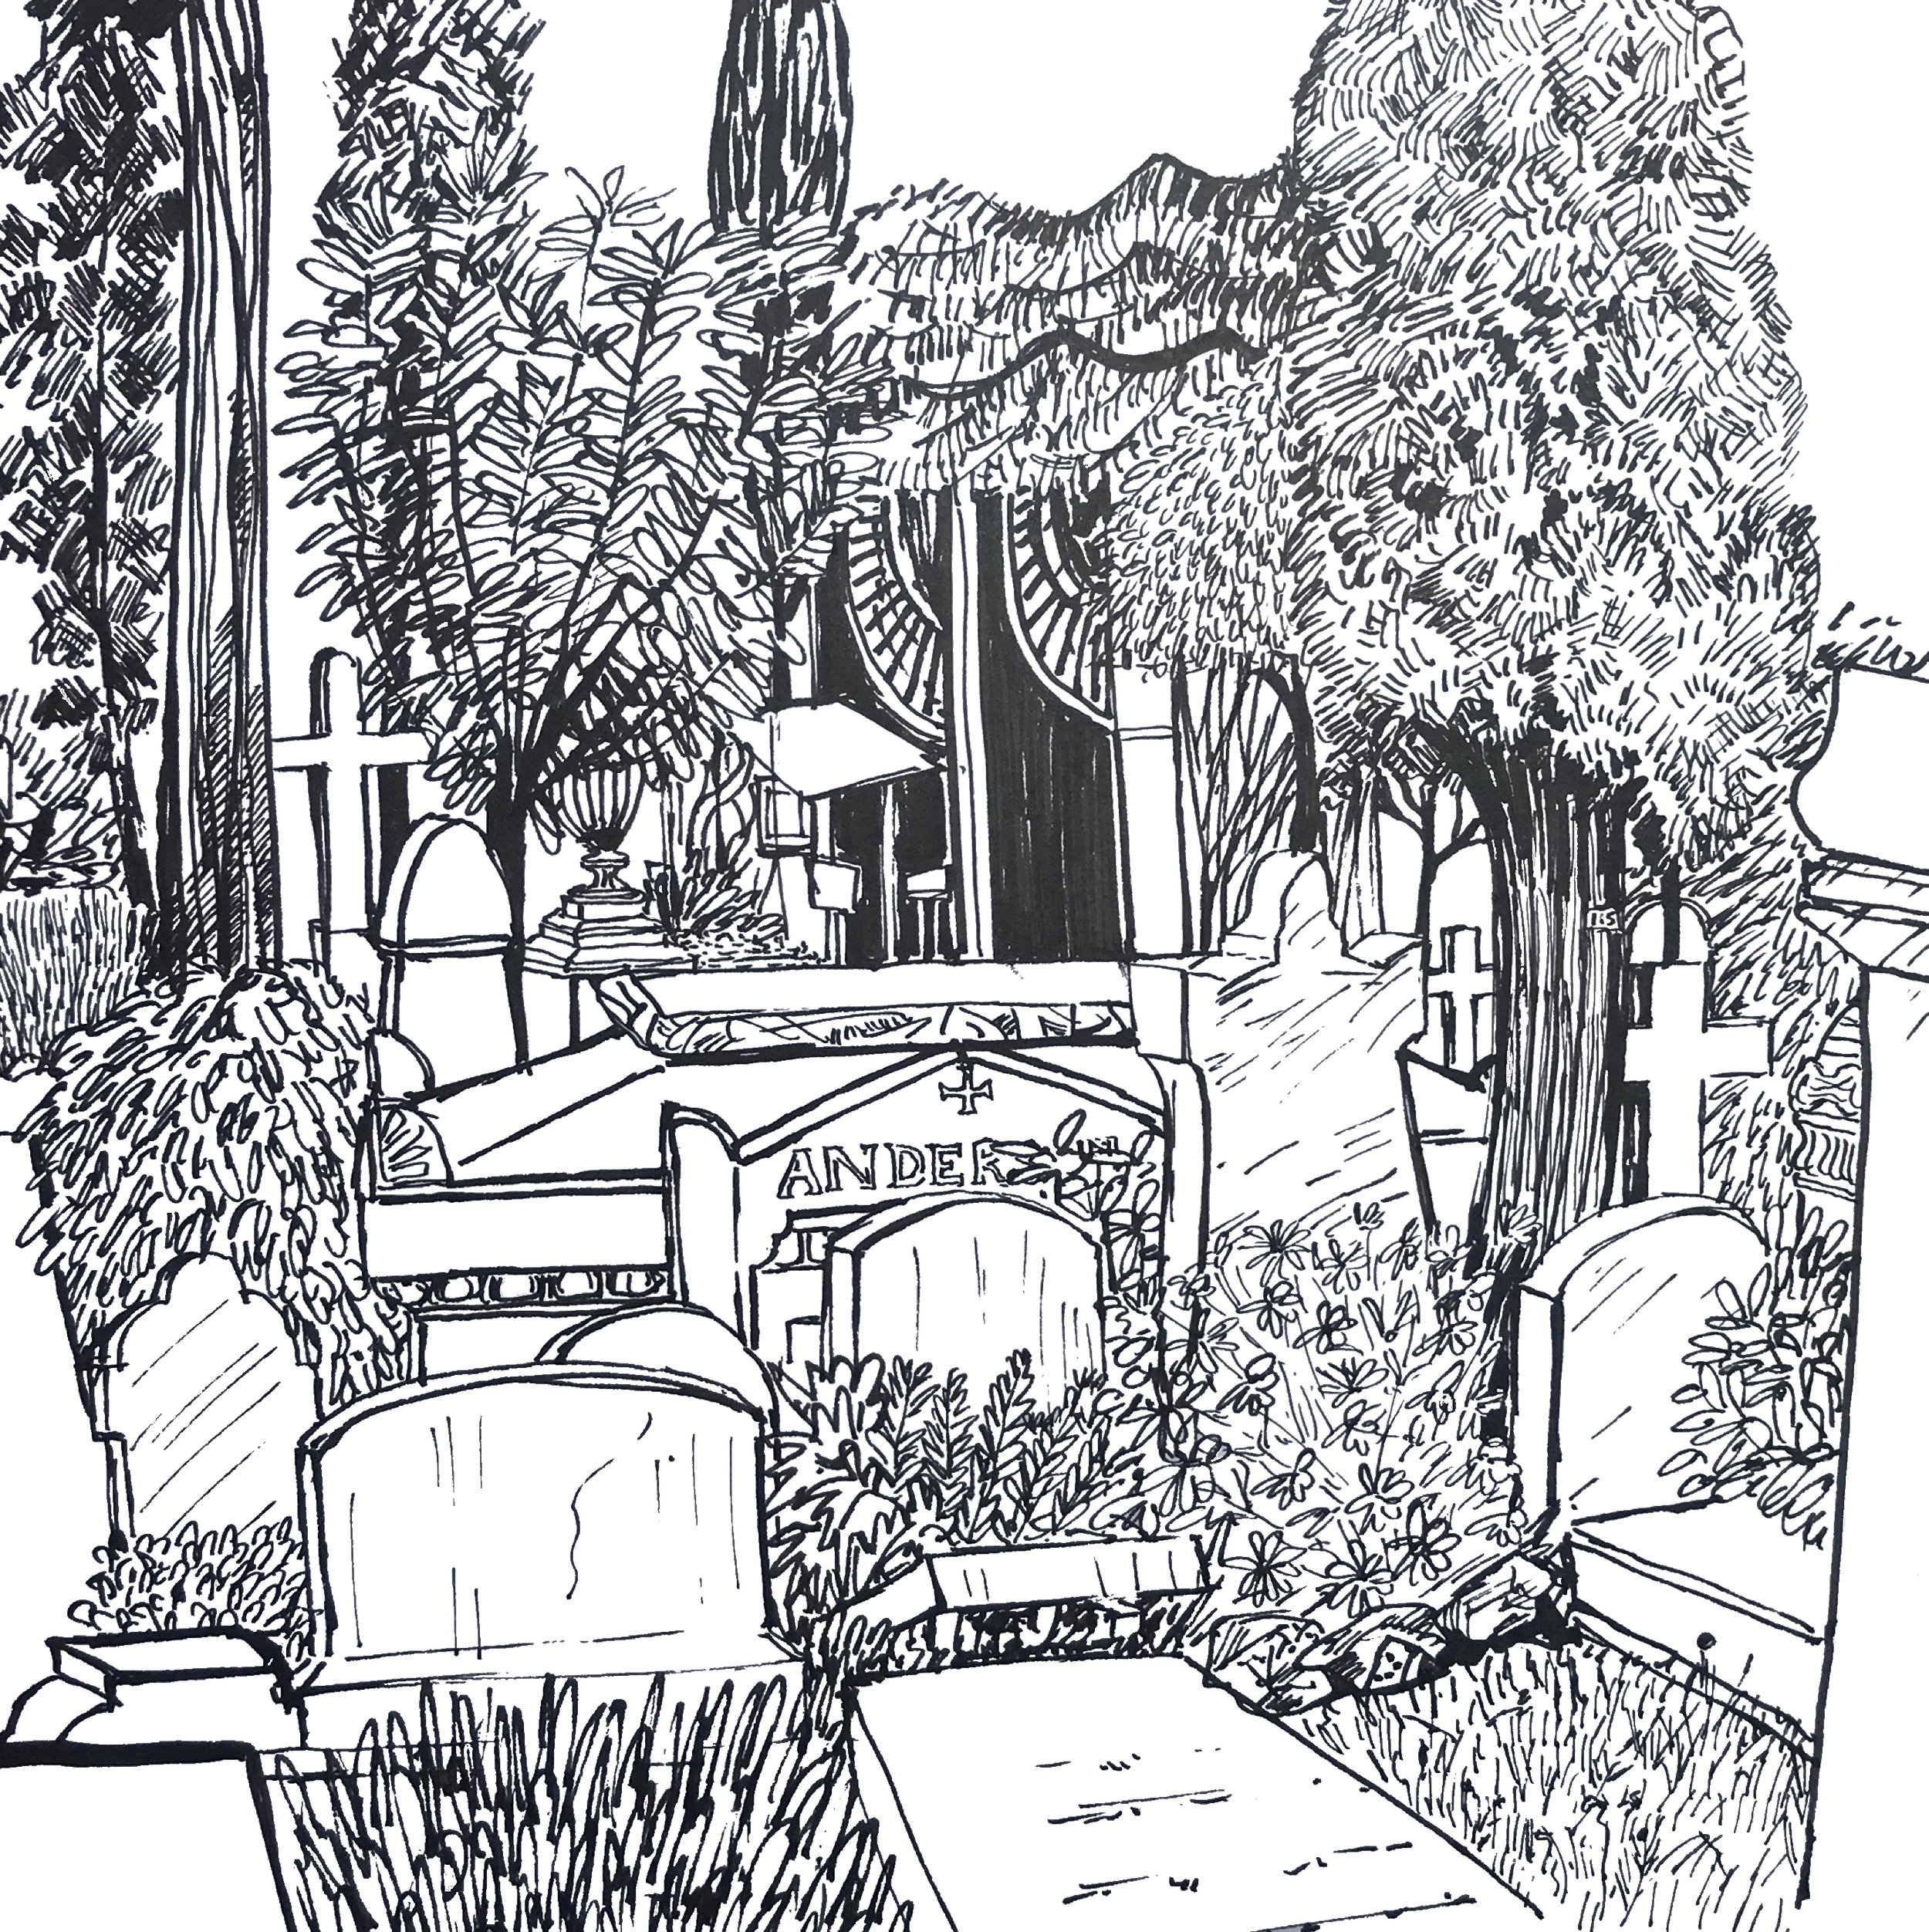 The Anderson Tomb  Non Catholic Cemetery of Rome.(Pen and Ink Drawing) 43.5 x 43.5cm £50 framed -